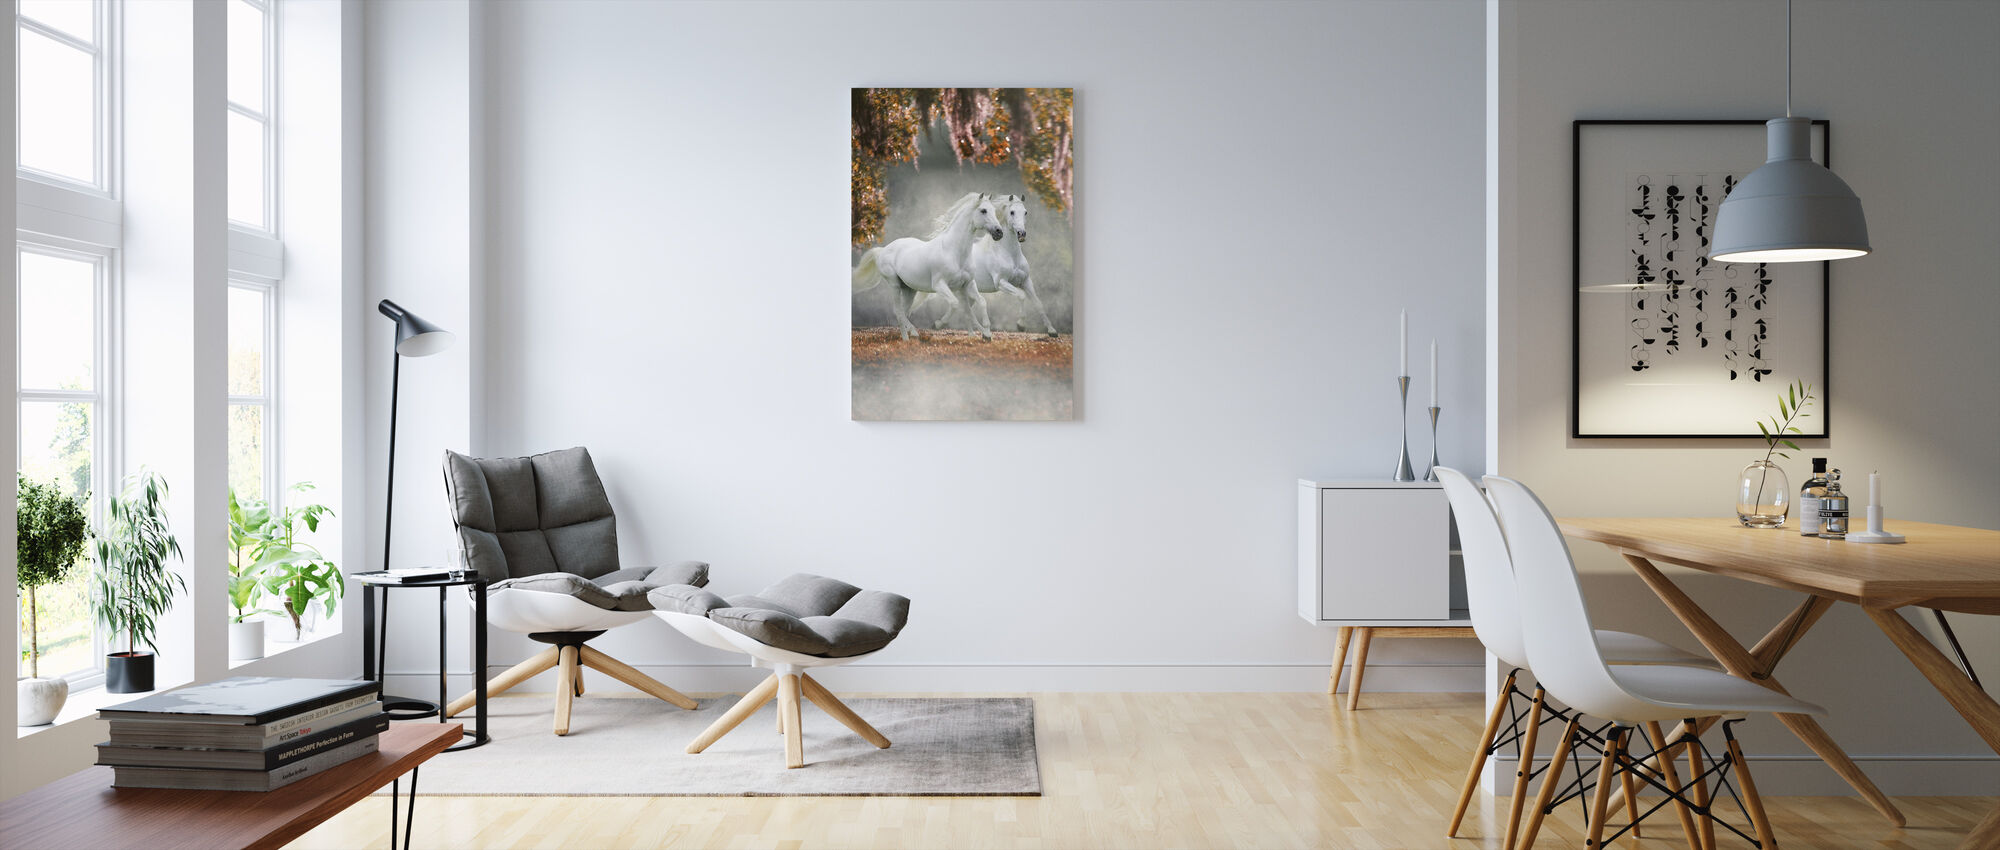 Enchanted Horses - Canvas print - Living Room